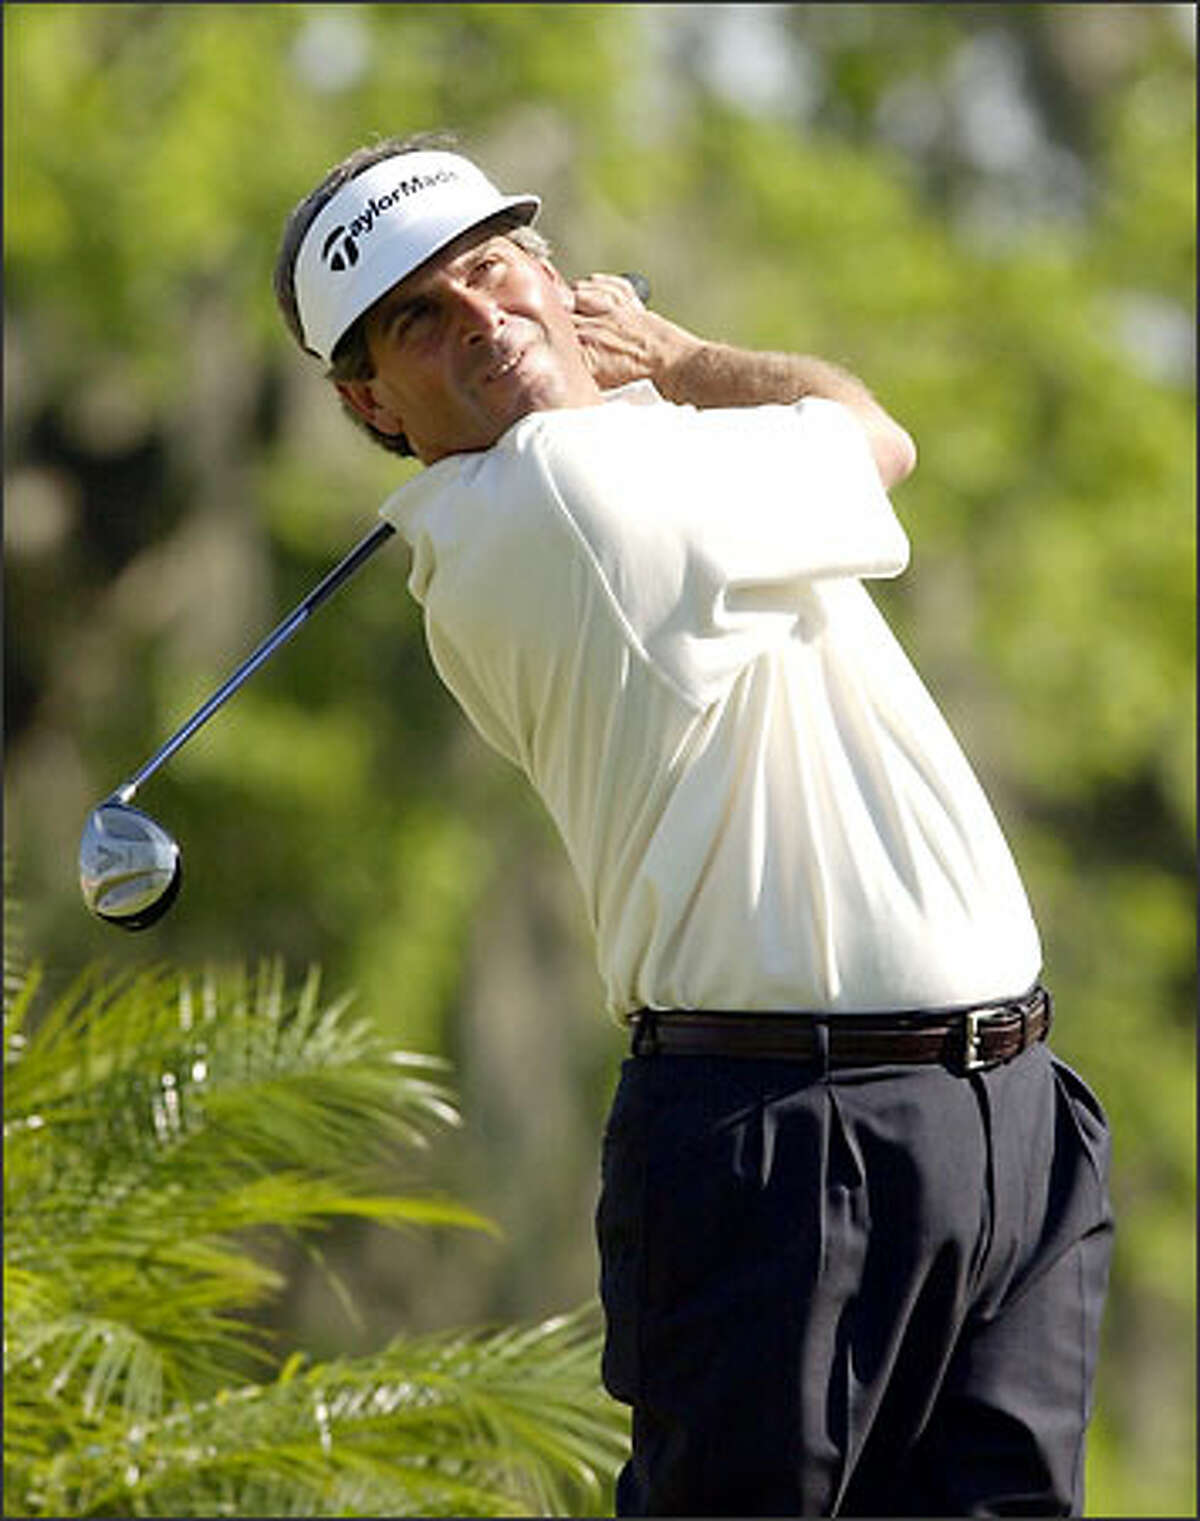 Fred Couples birdied four of the last five holes Sunday in the Shell Houston Open.